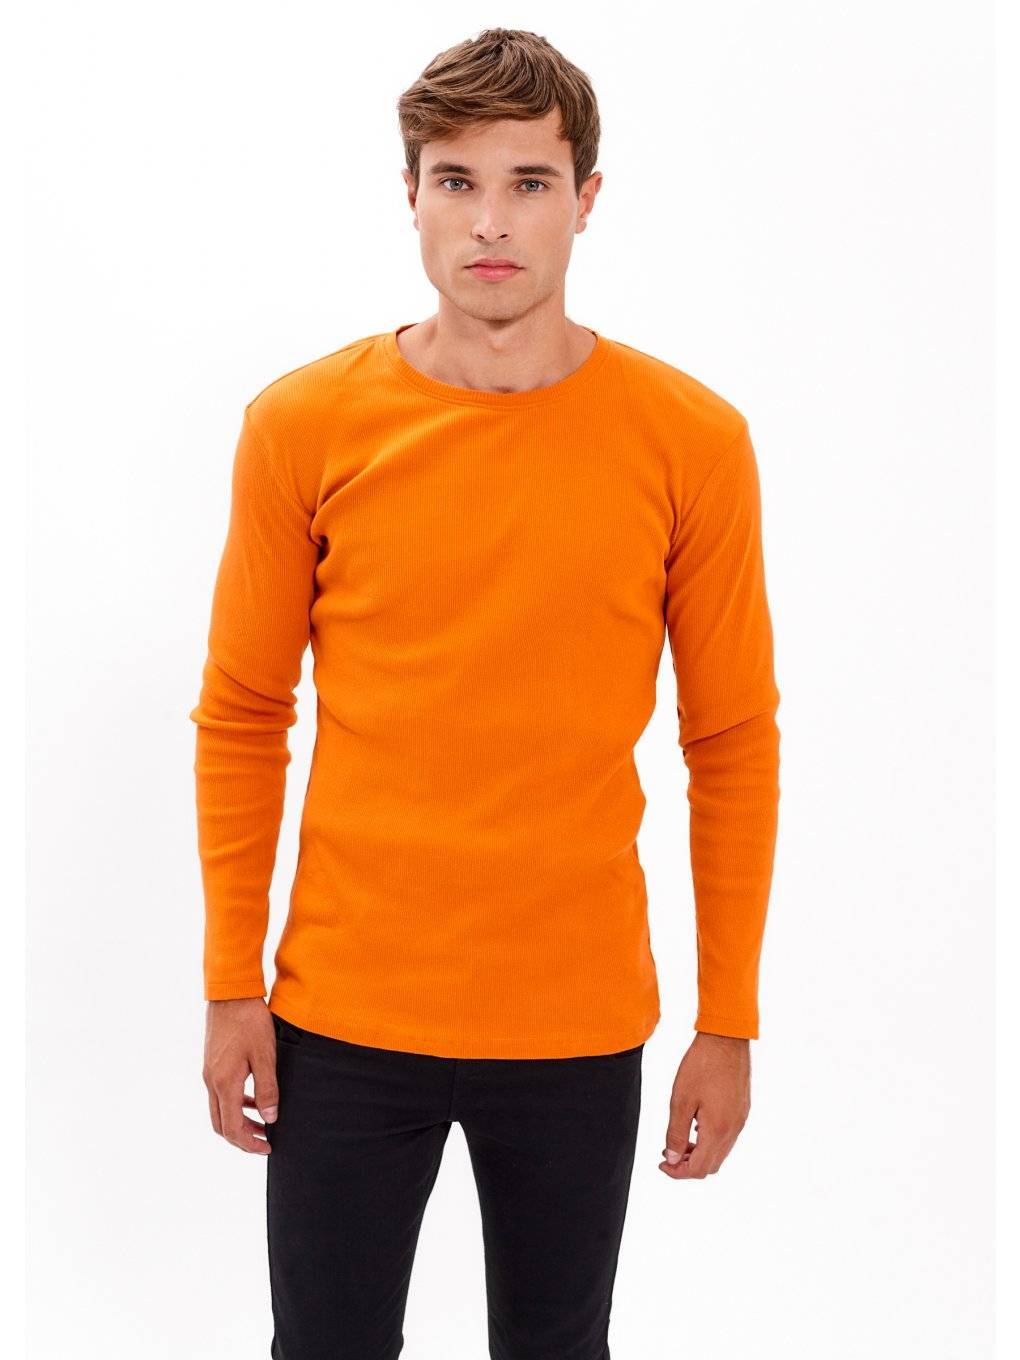 BASIC RIB-KINT T-SHIRT WITH LONG SLEEVE